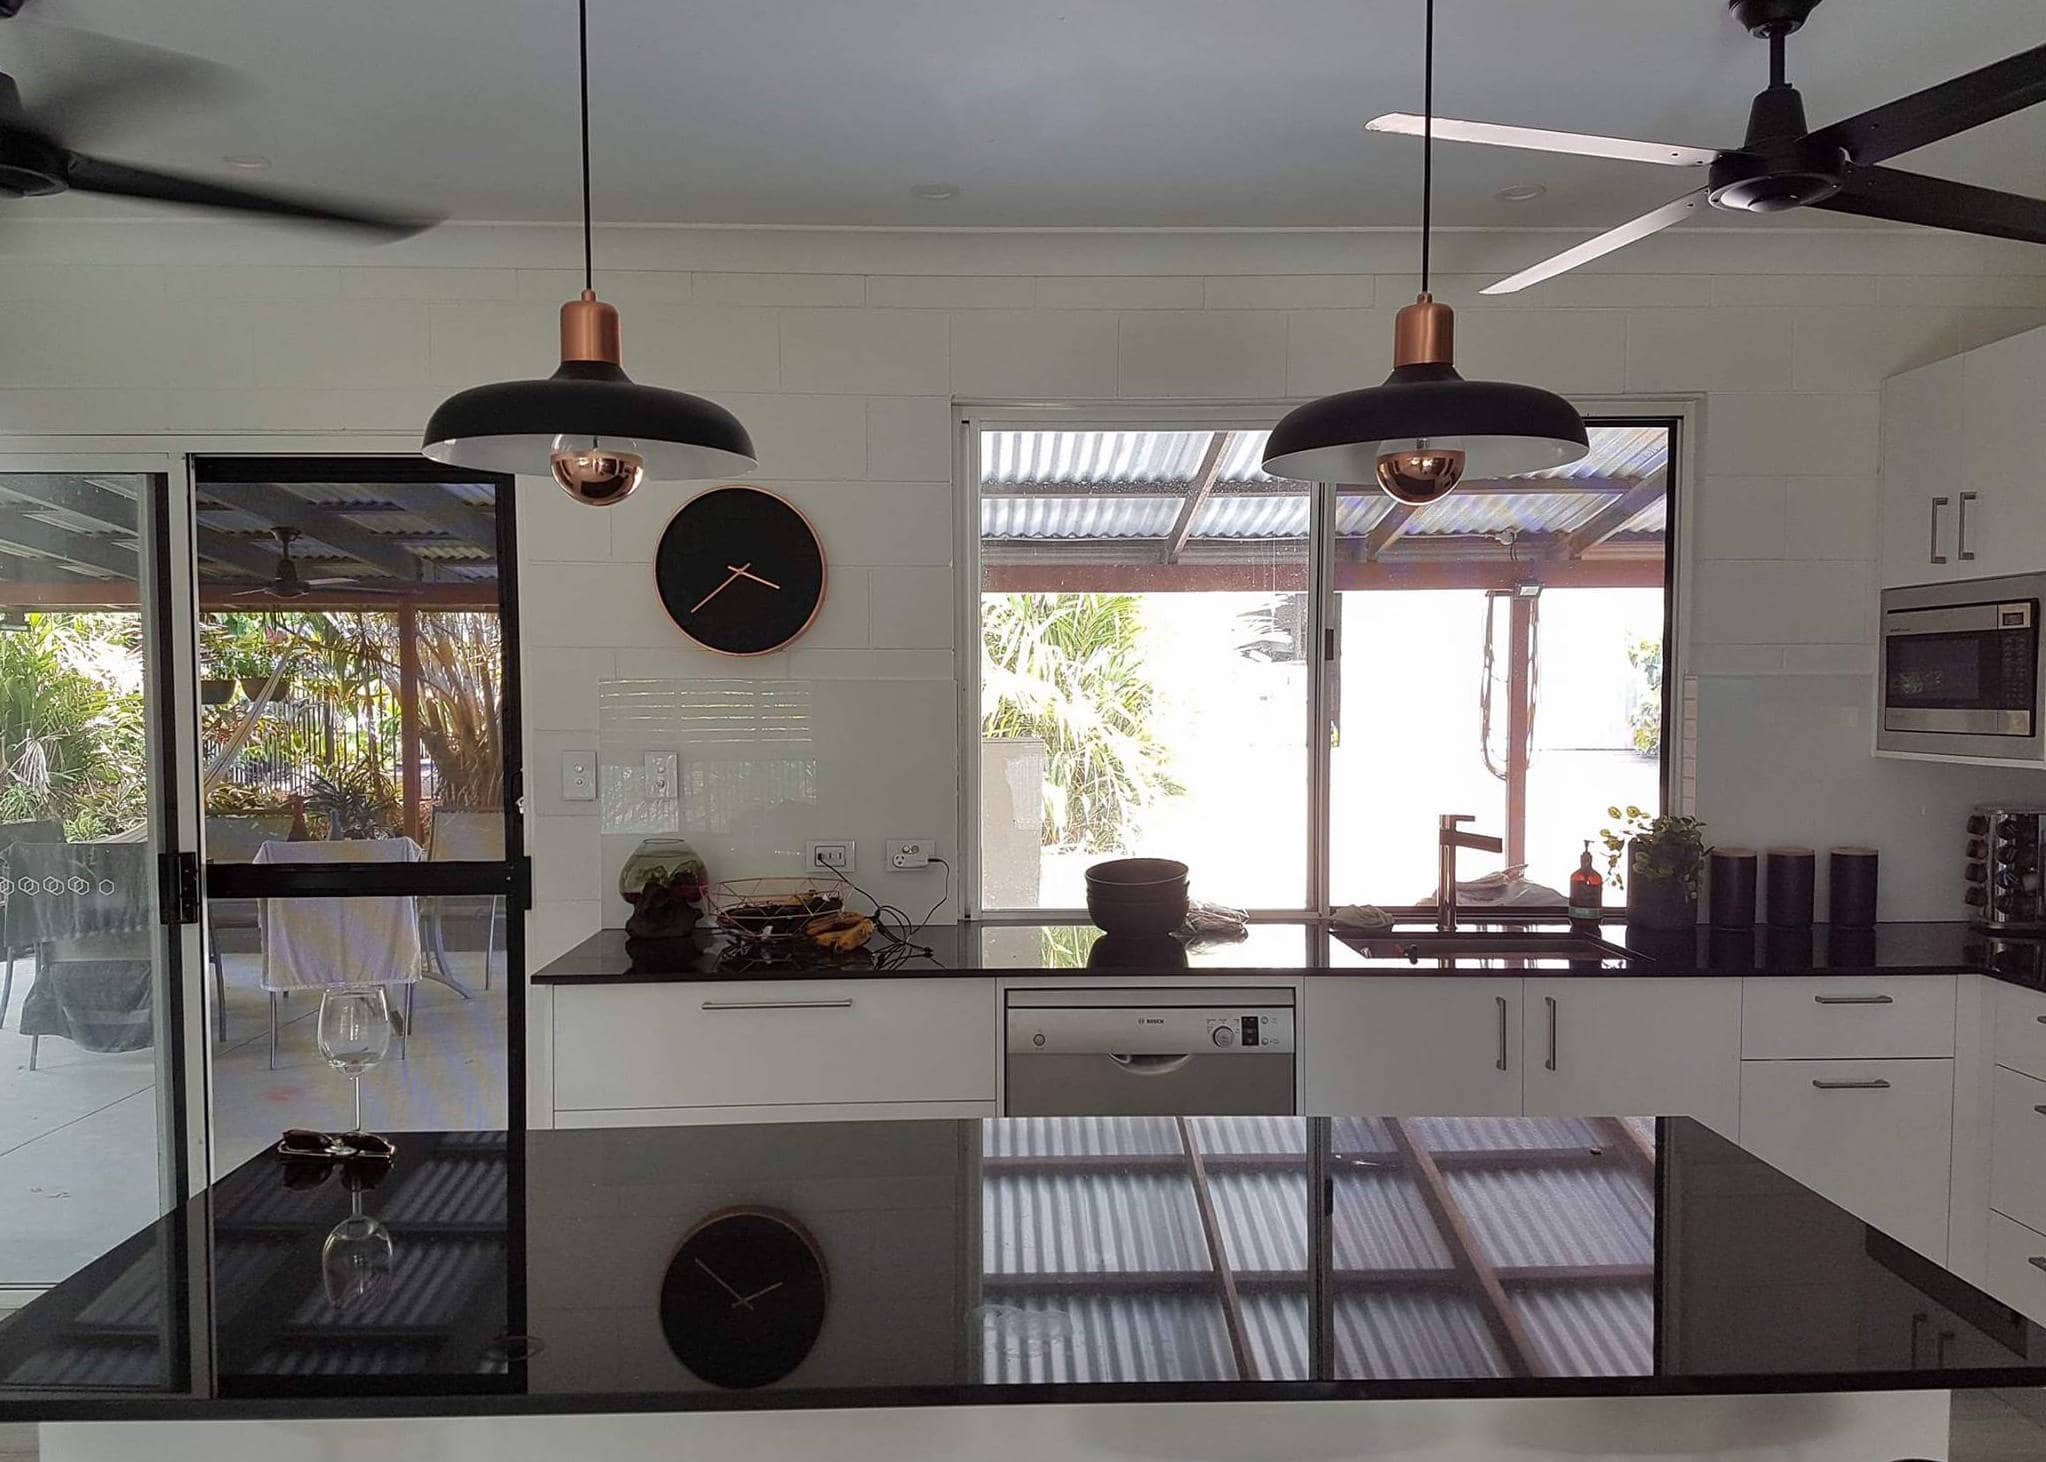 Recently completed electrical renovation with black pendant lights and ceiling fans